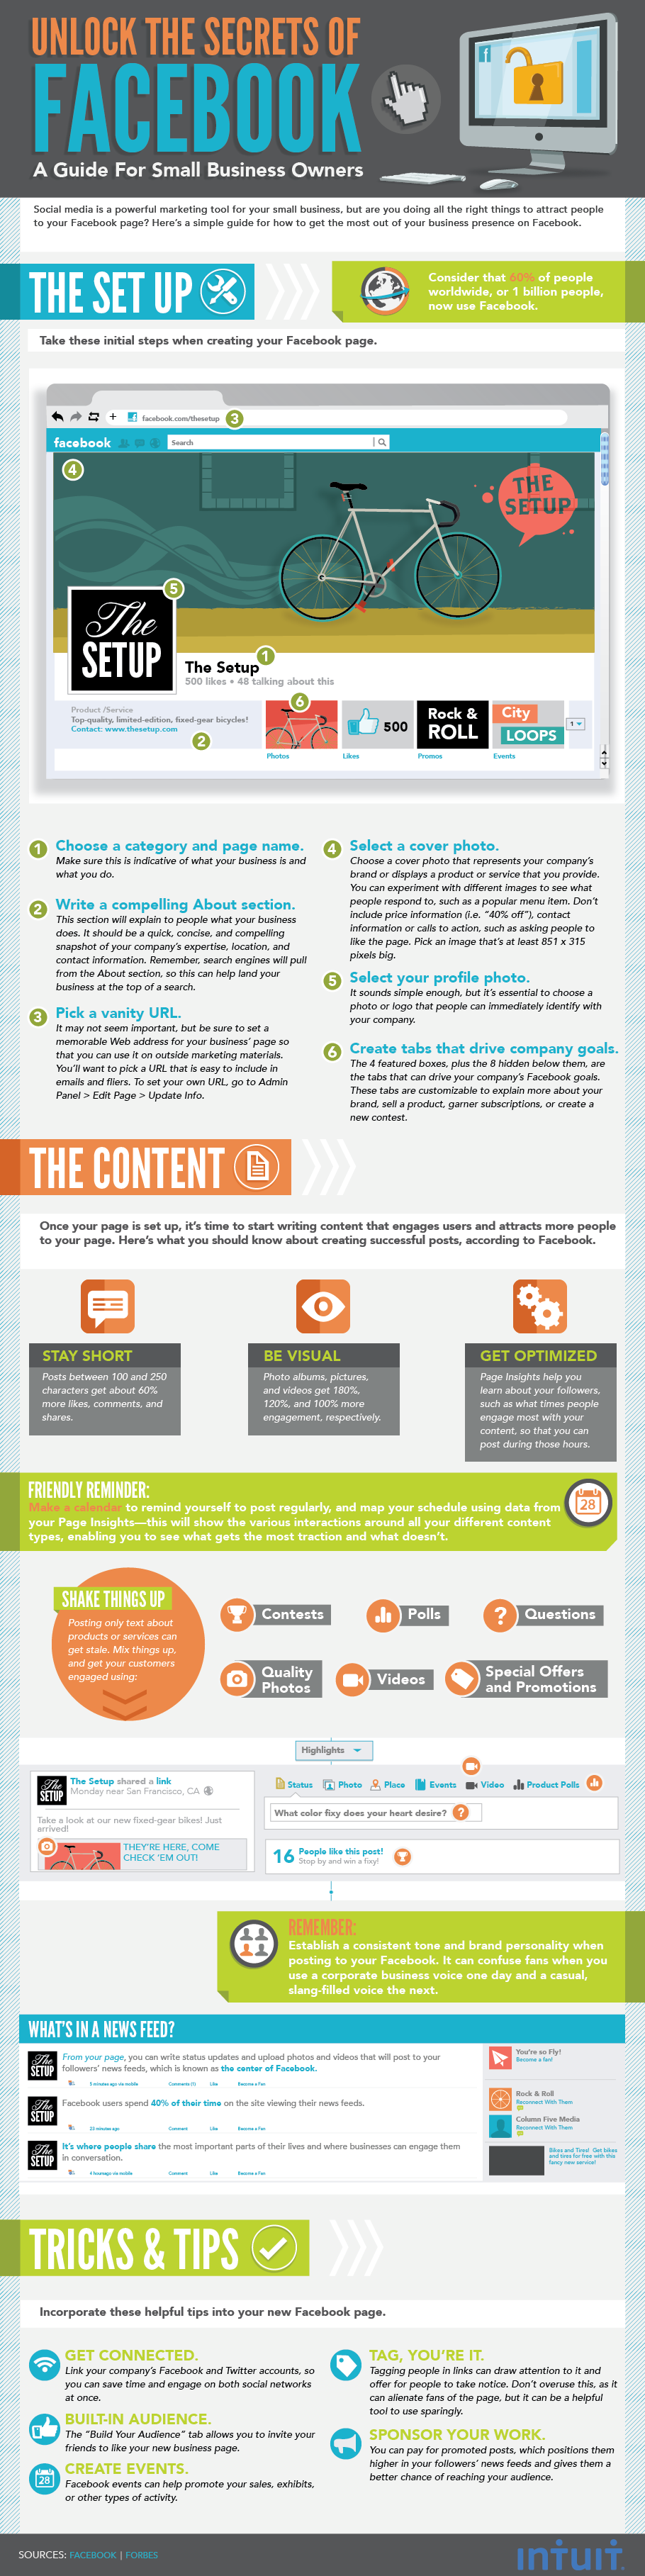 Facebook marketing tips infographic